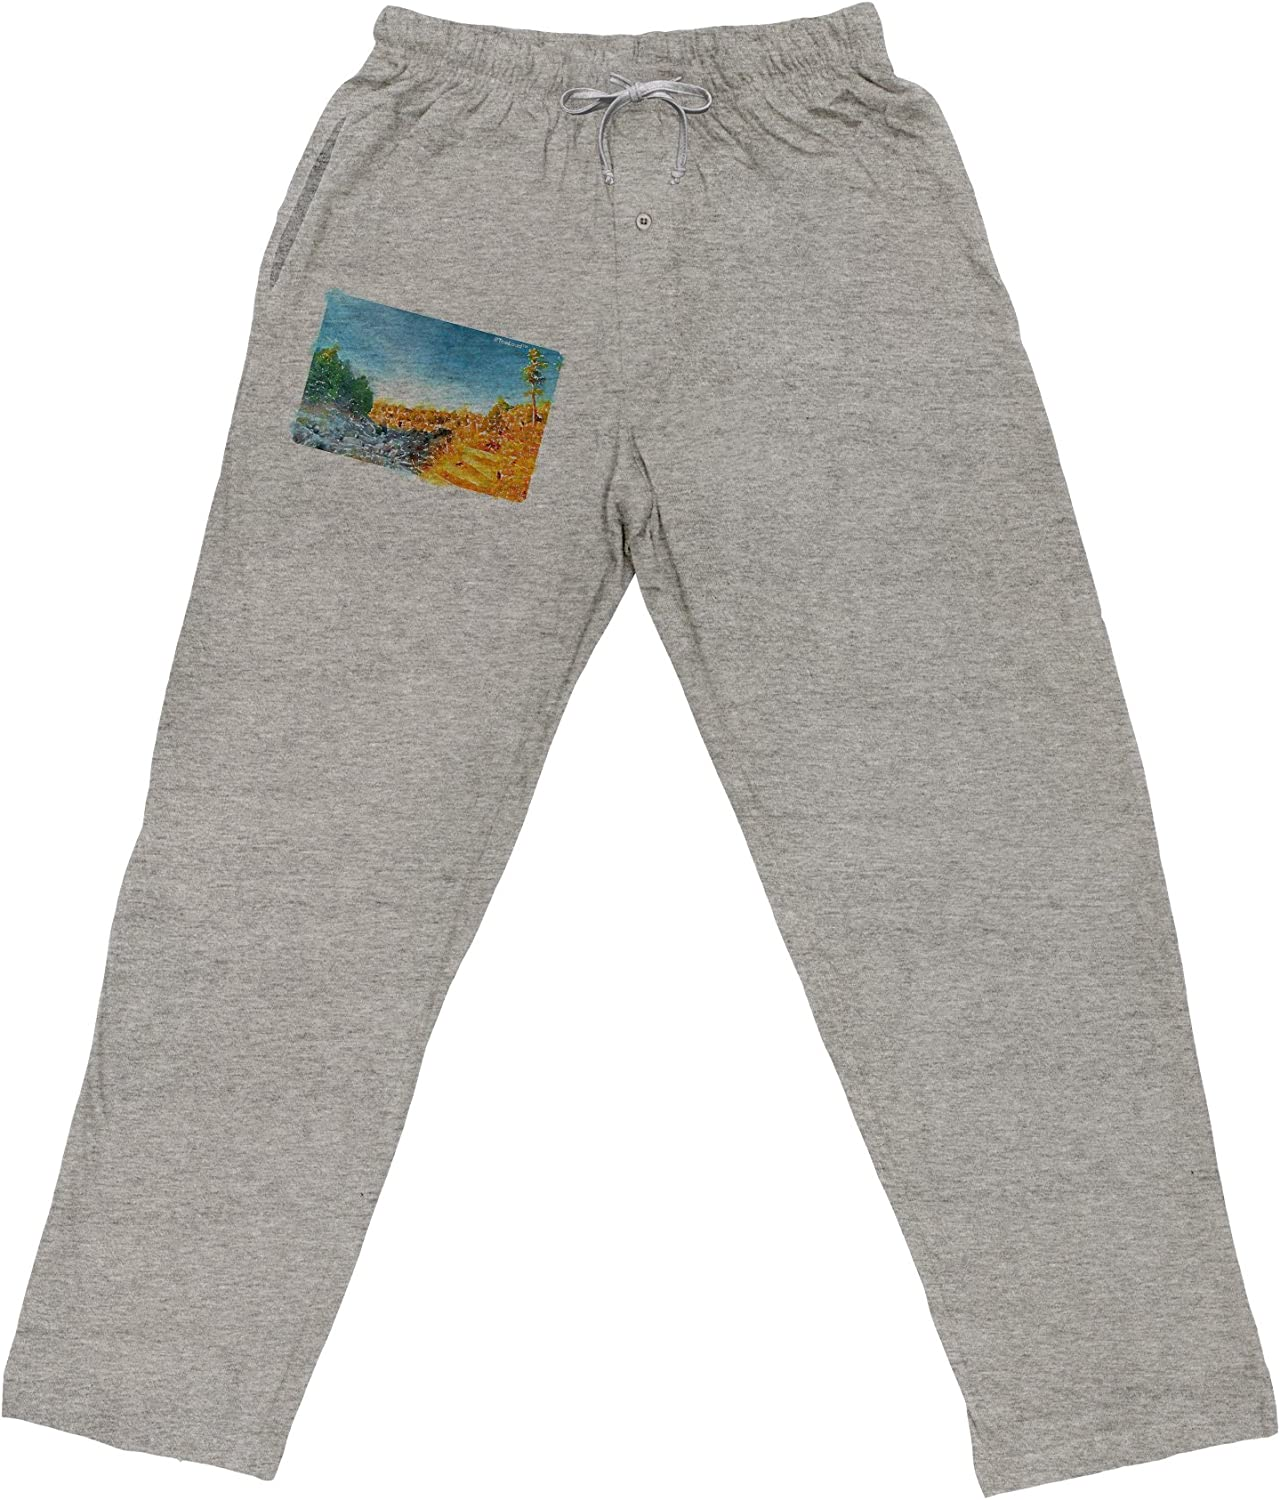 TooLoud Castlewood Canyon Watercolor Adult Loose Fit Lounge Pants